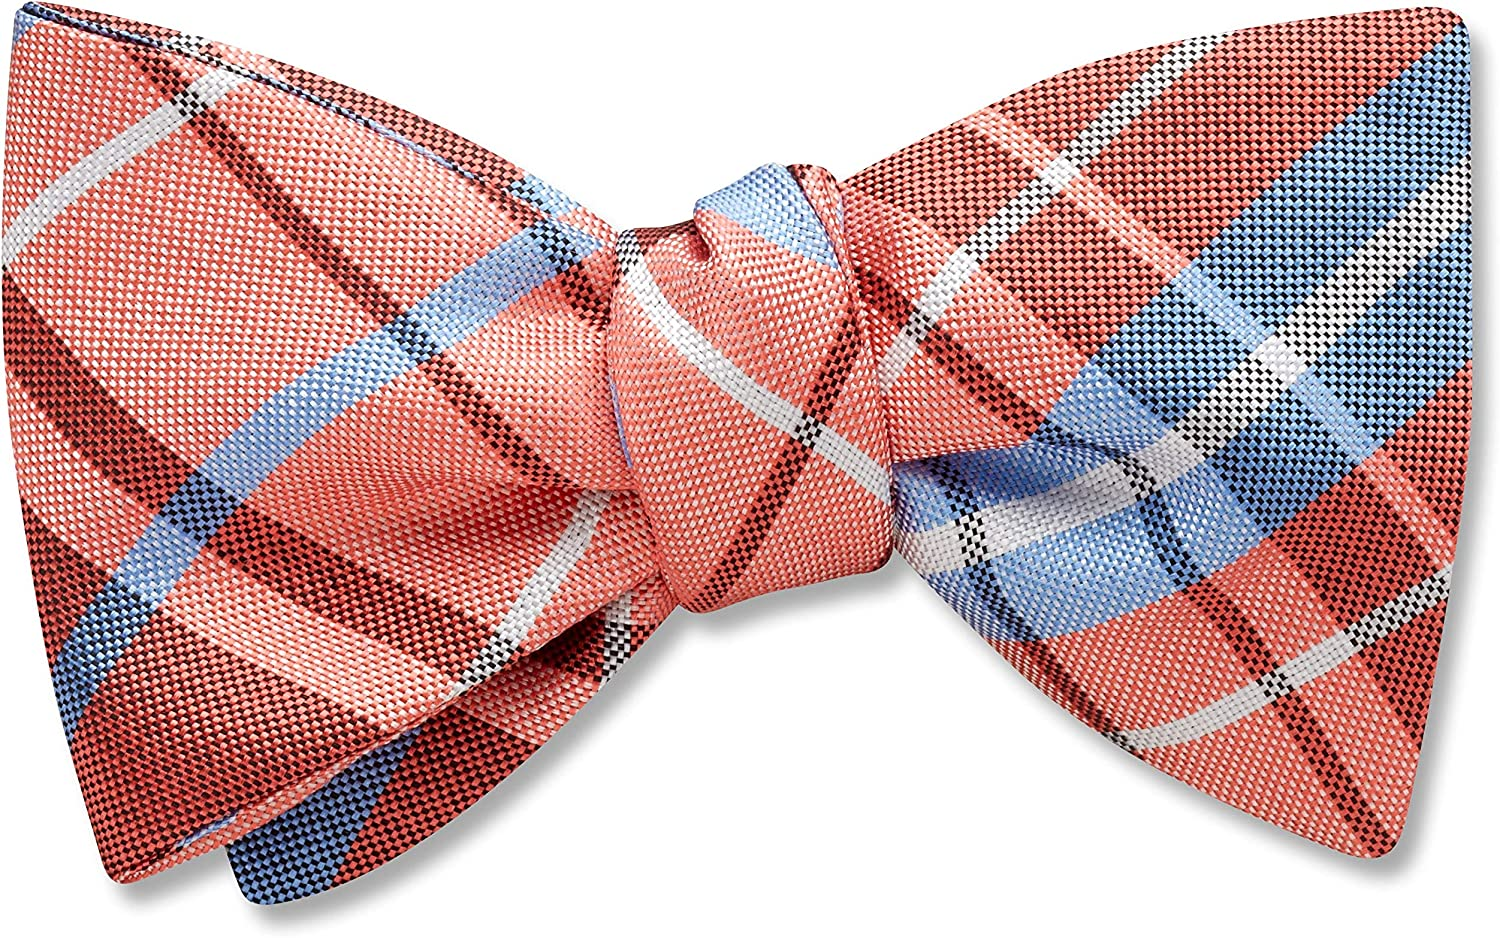 Mansfield Coral Orange,Pink Plaid, Men's Bow Tie, Handmade in the USA